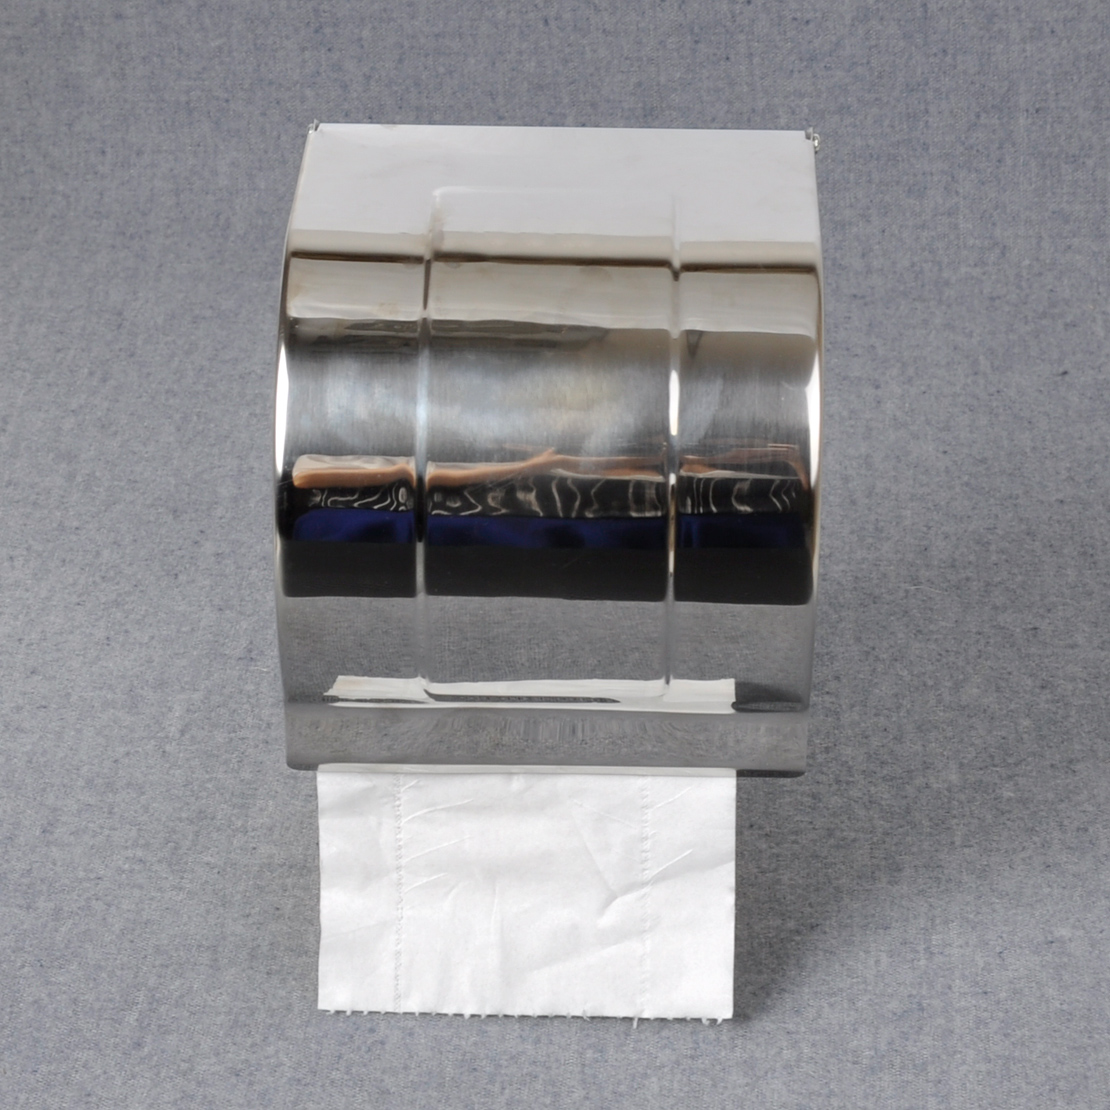 Stainless Steel Toilet Paper Stand Bathroom Stainless Steel Toilet Paper Holder Roll Tissue